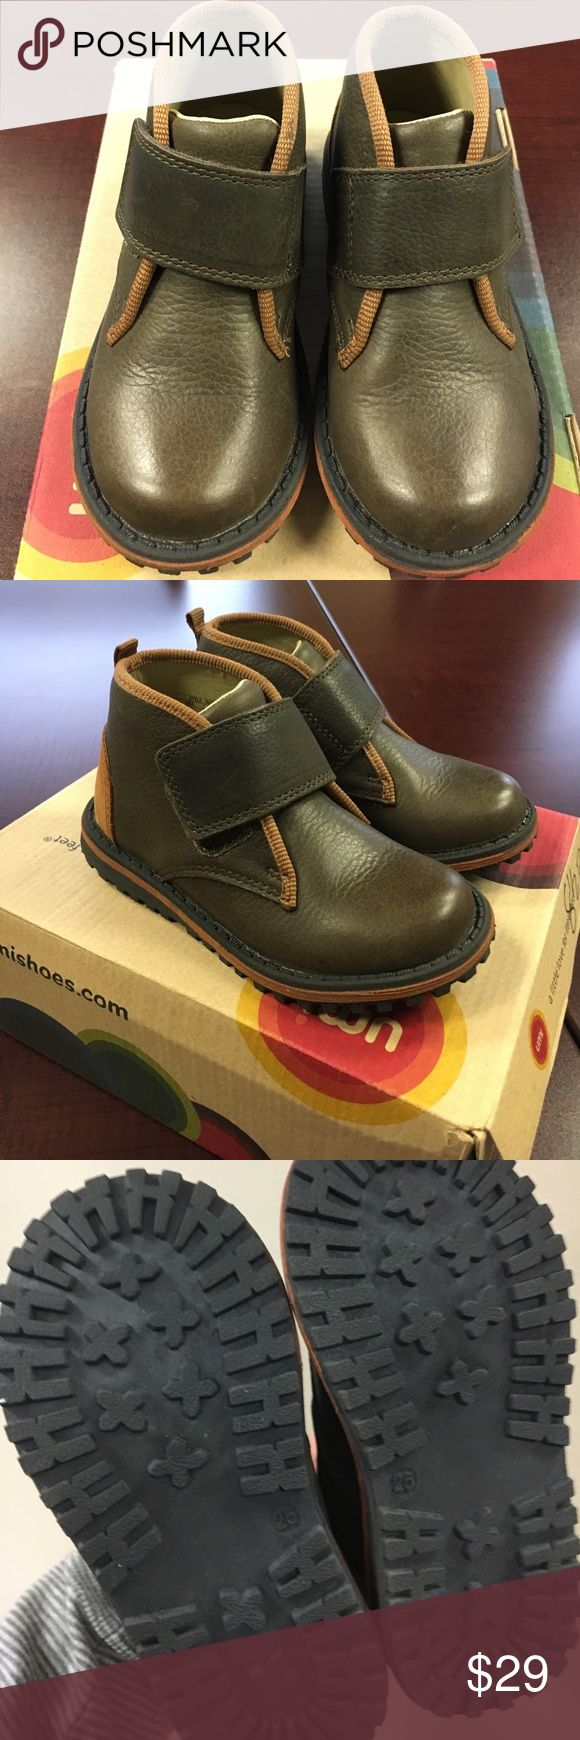 Umi boys olive multi color boots with velcro strap Umi boys olive multi color boots with velcro strap Umi Shoes Boots